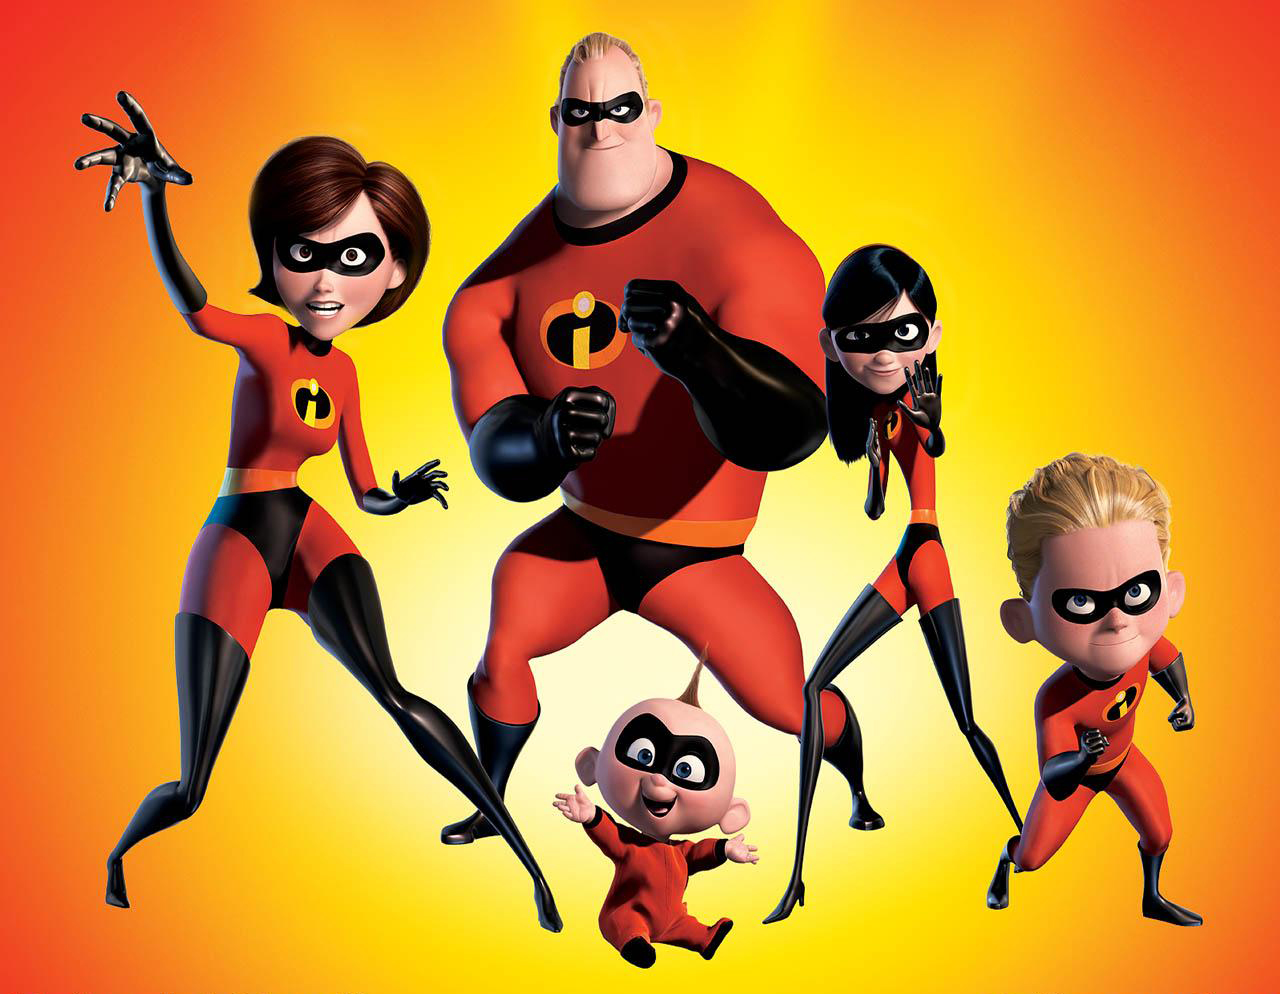 https://i2.wp.com/www.epicdash.com/wp-content/uploads/2014/03/fun-facts-about-the-incredibles.jpg